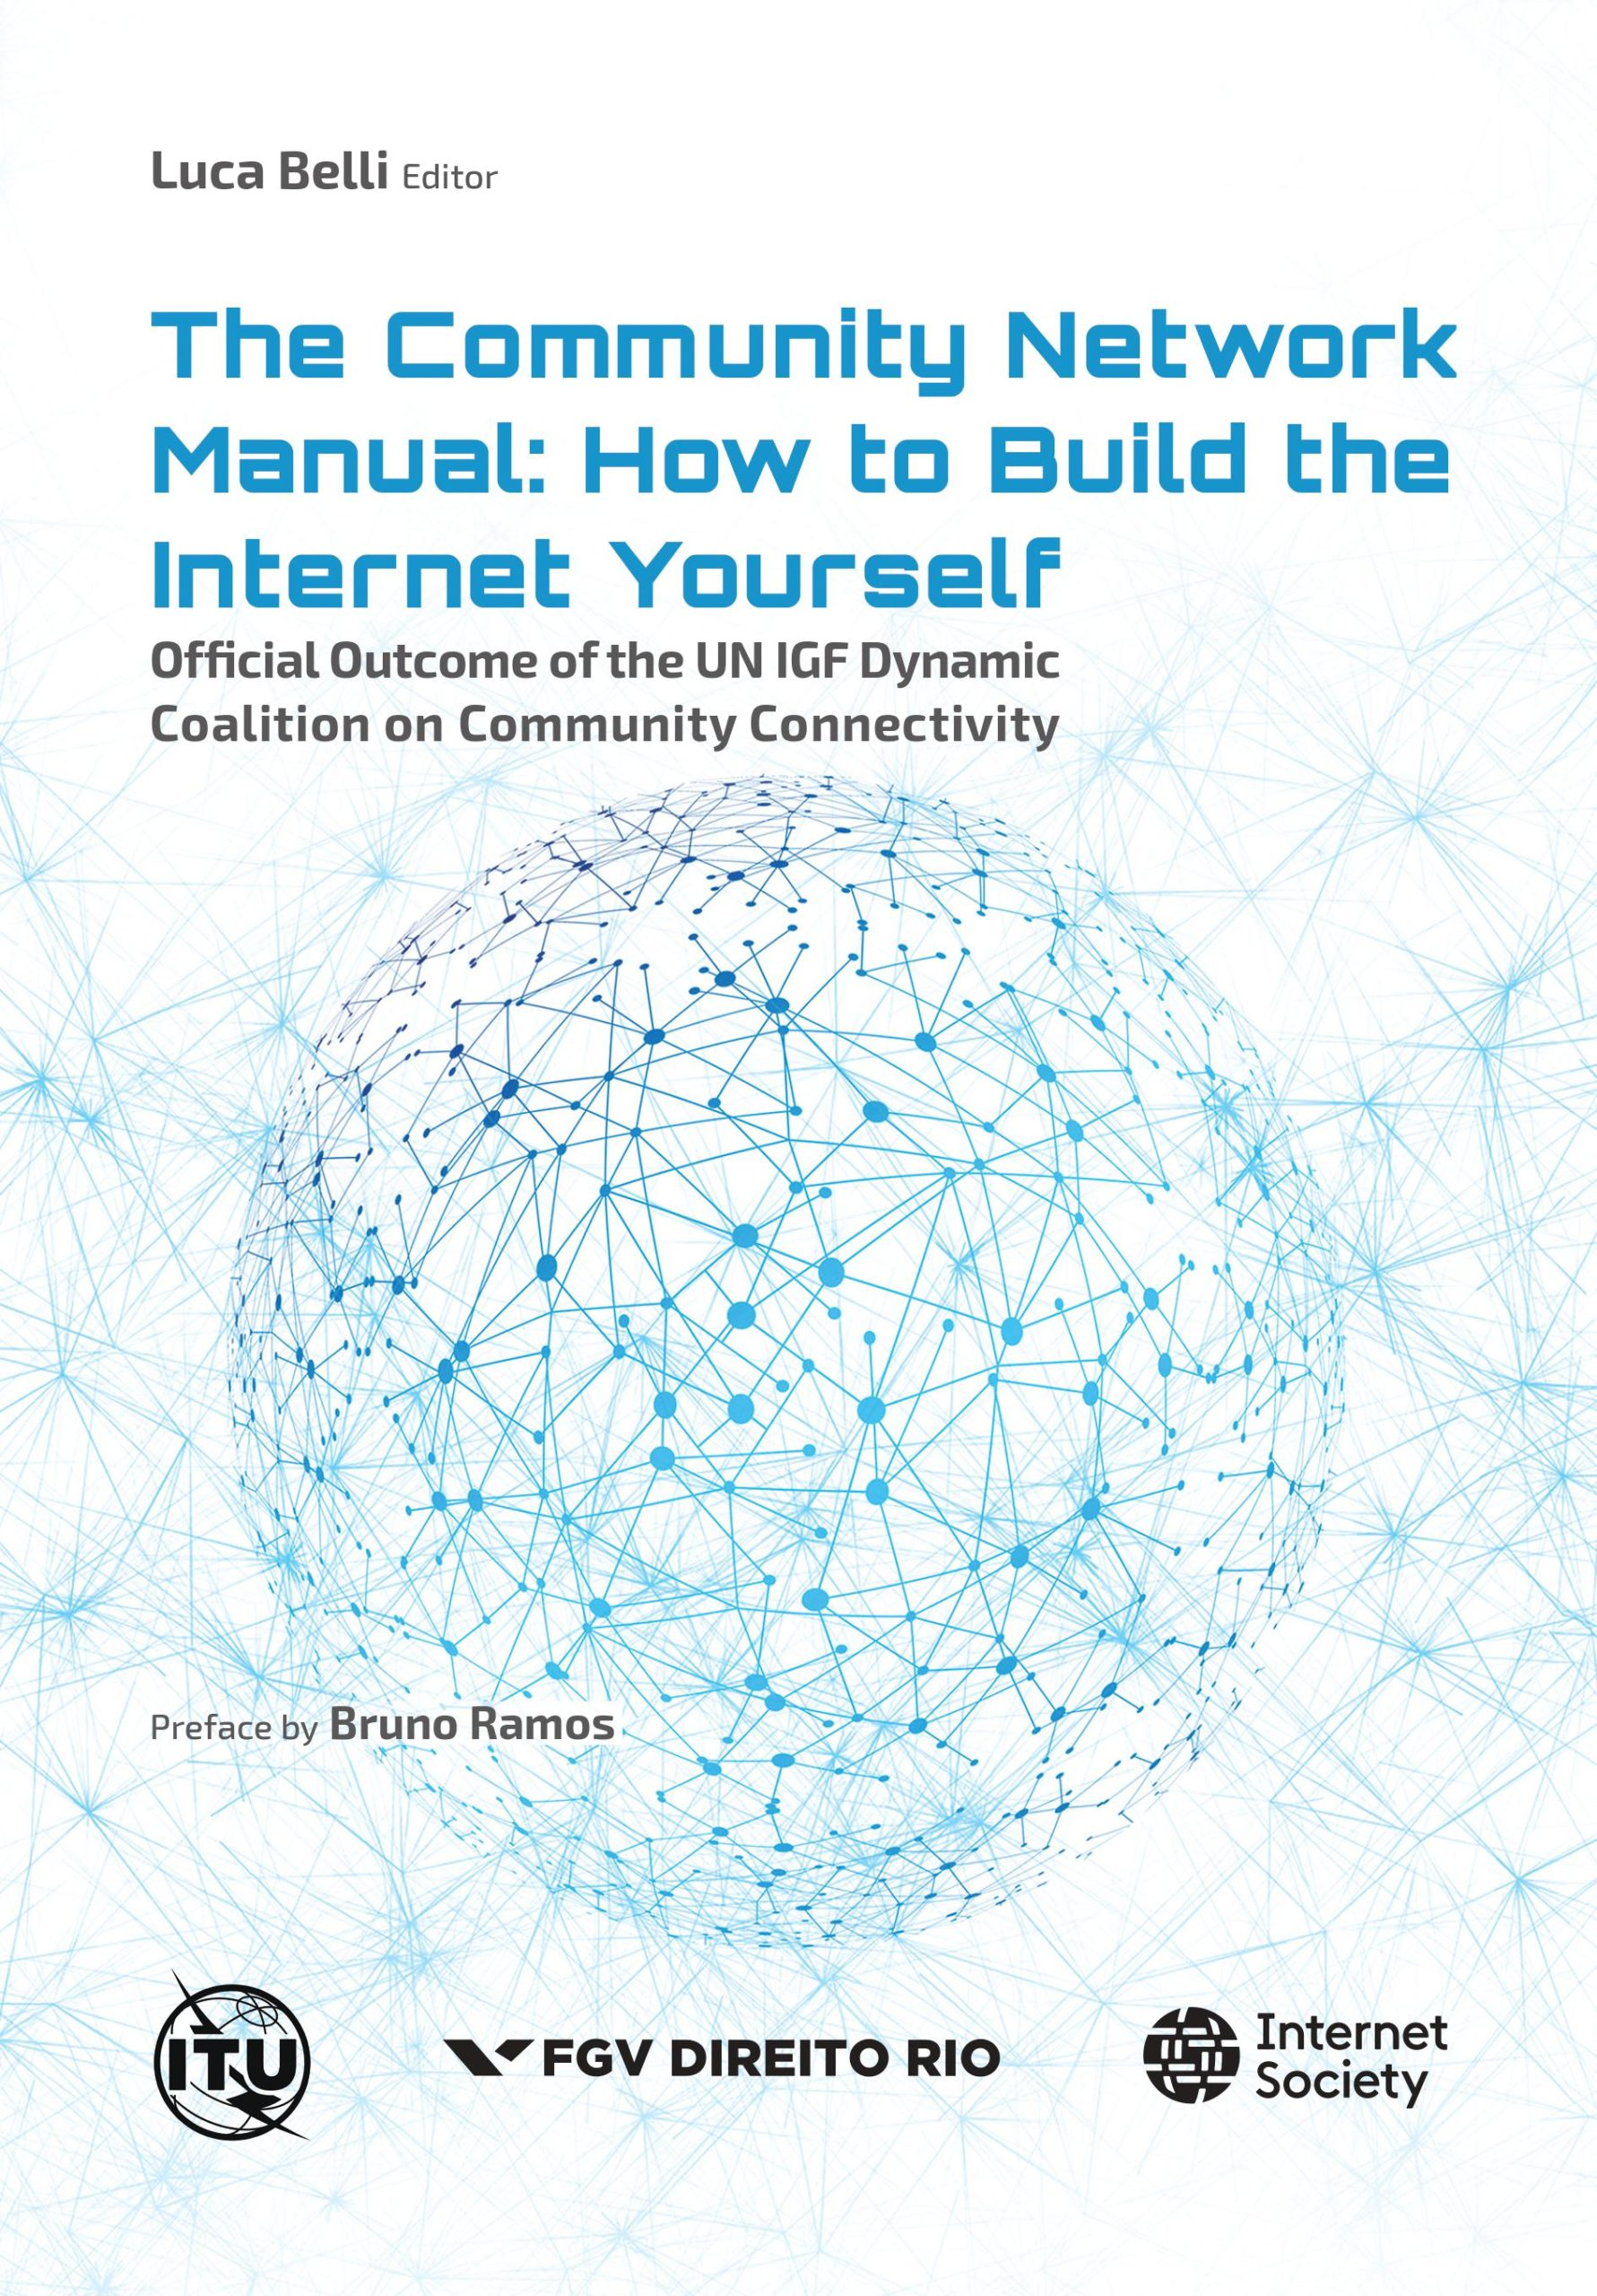 The community network manual : how to build the Internet yourself